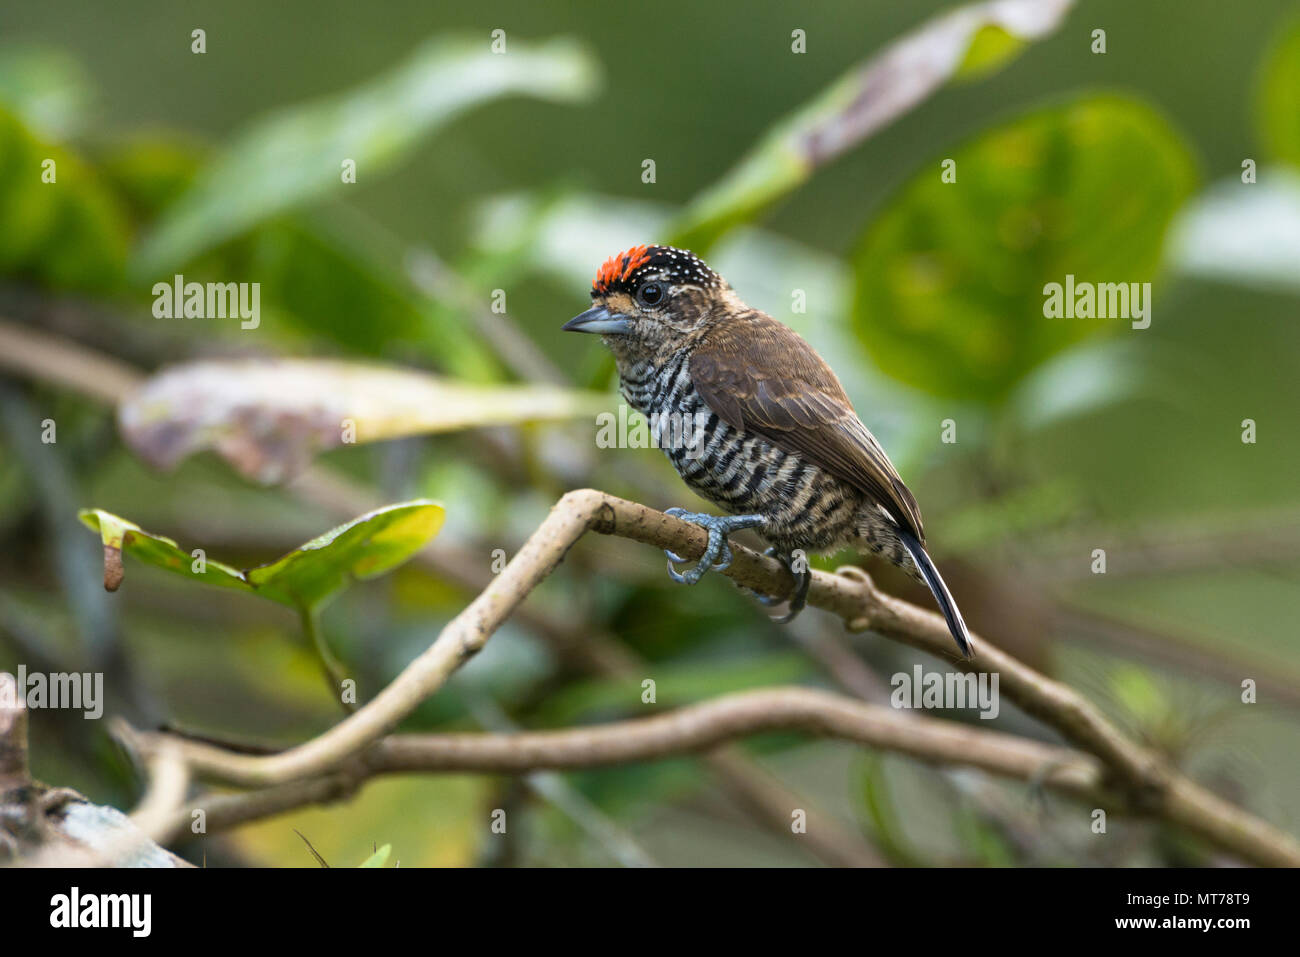 A male White-barred Piculet (Picumnus cirratus) from SE Brazil - Stock Image